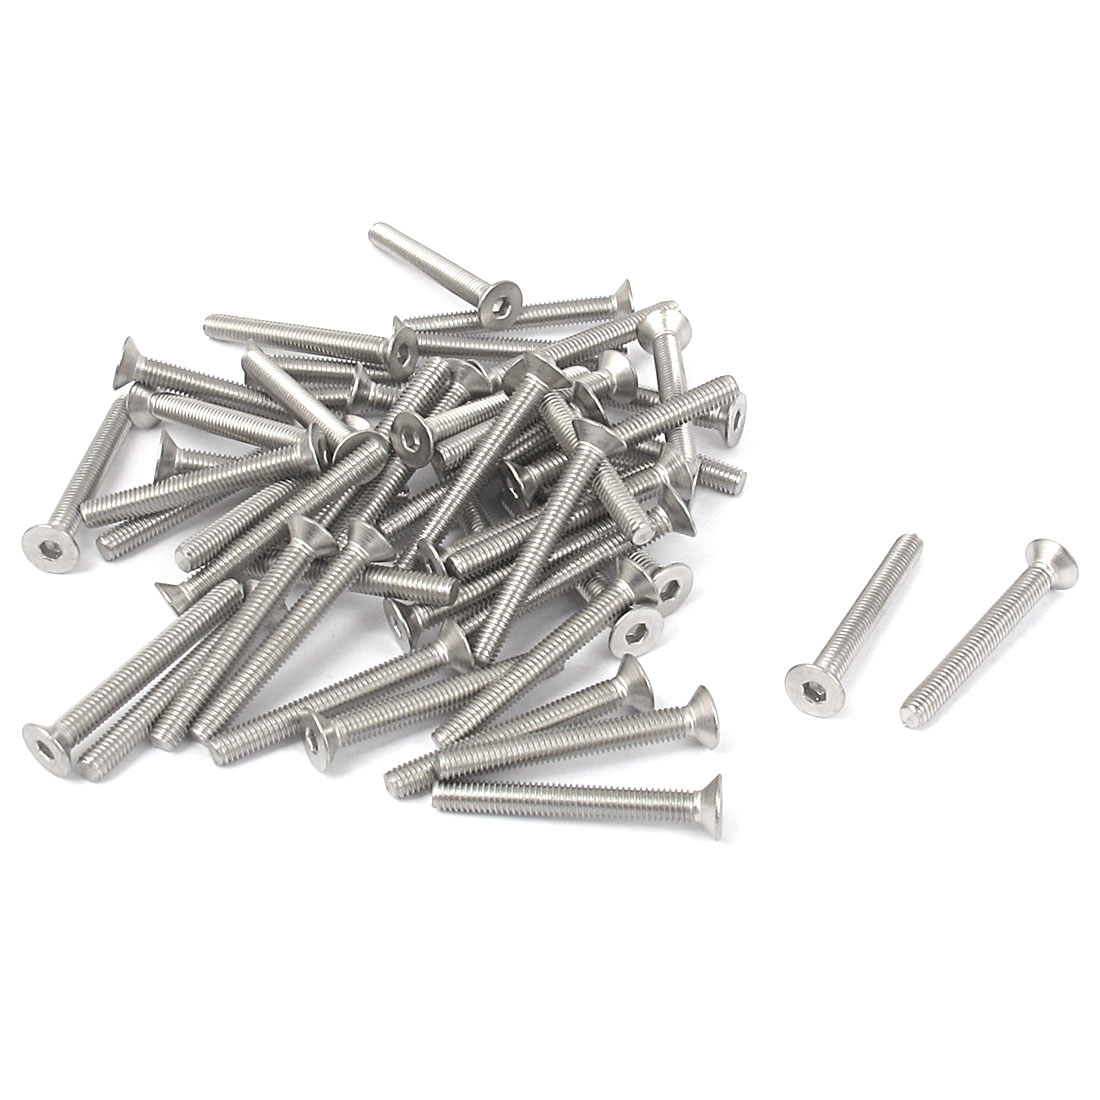 M3 x 25mm Metric 304 Stainless Steel Hex Socket Countersunk Flat Head Screw Bolts 50PCS